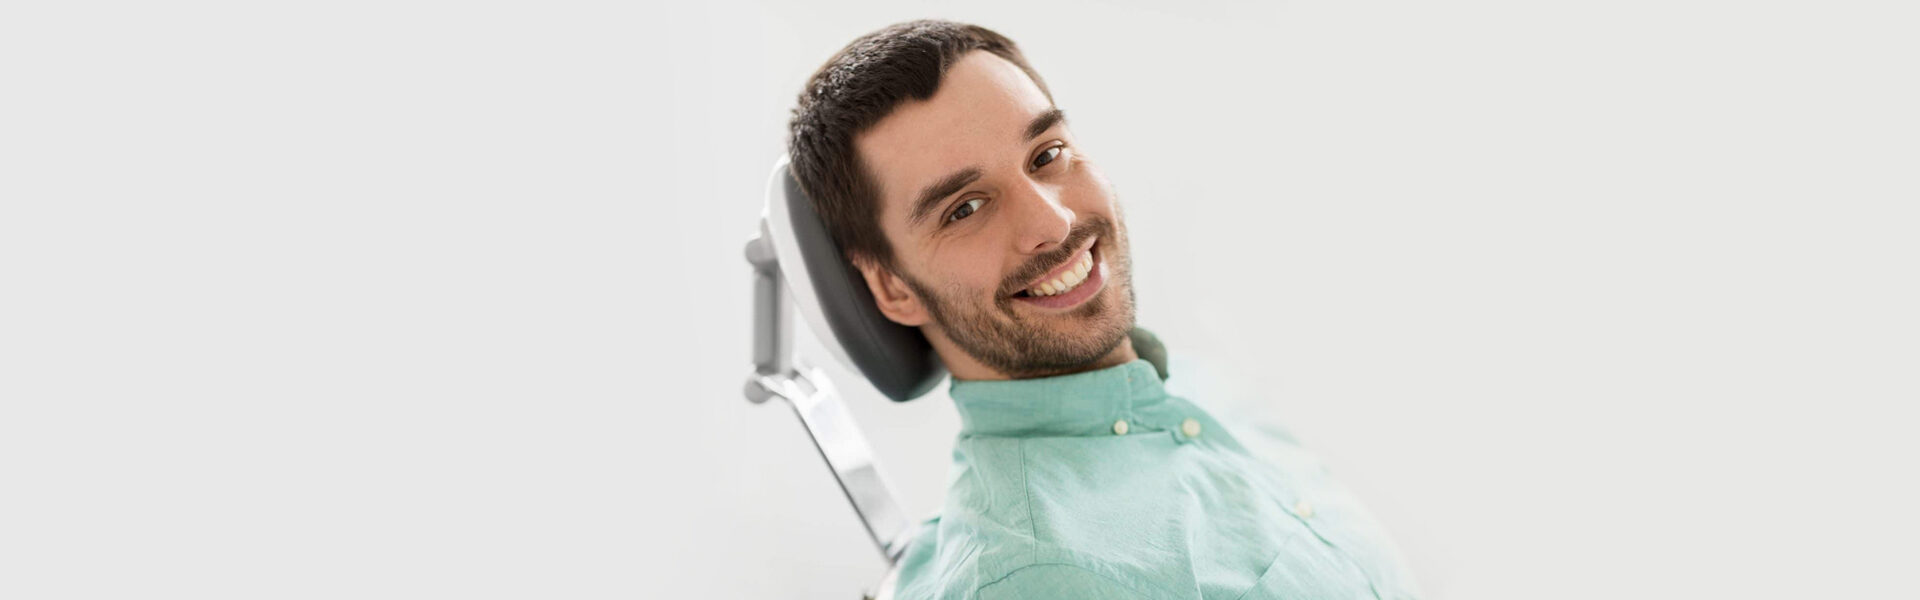 Dental Exams and Cleanings in Auburn, WA - Teeth Cleaning Near You